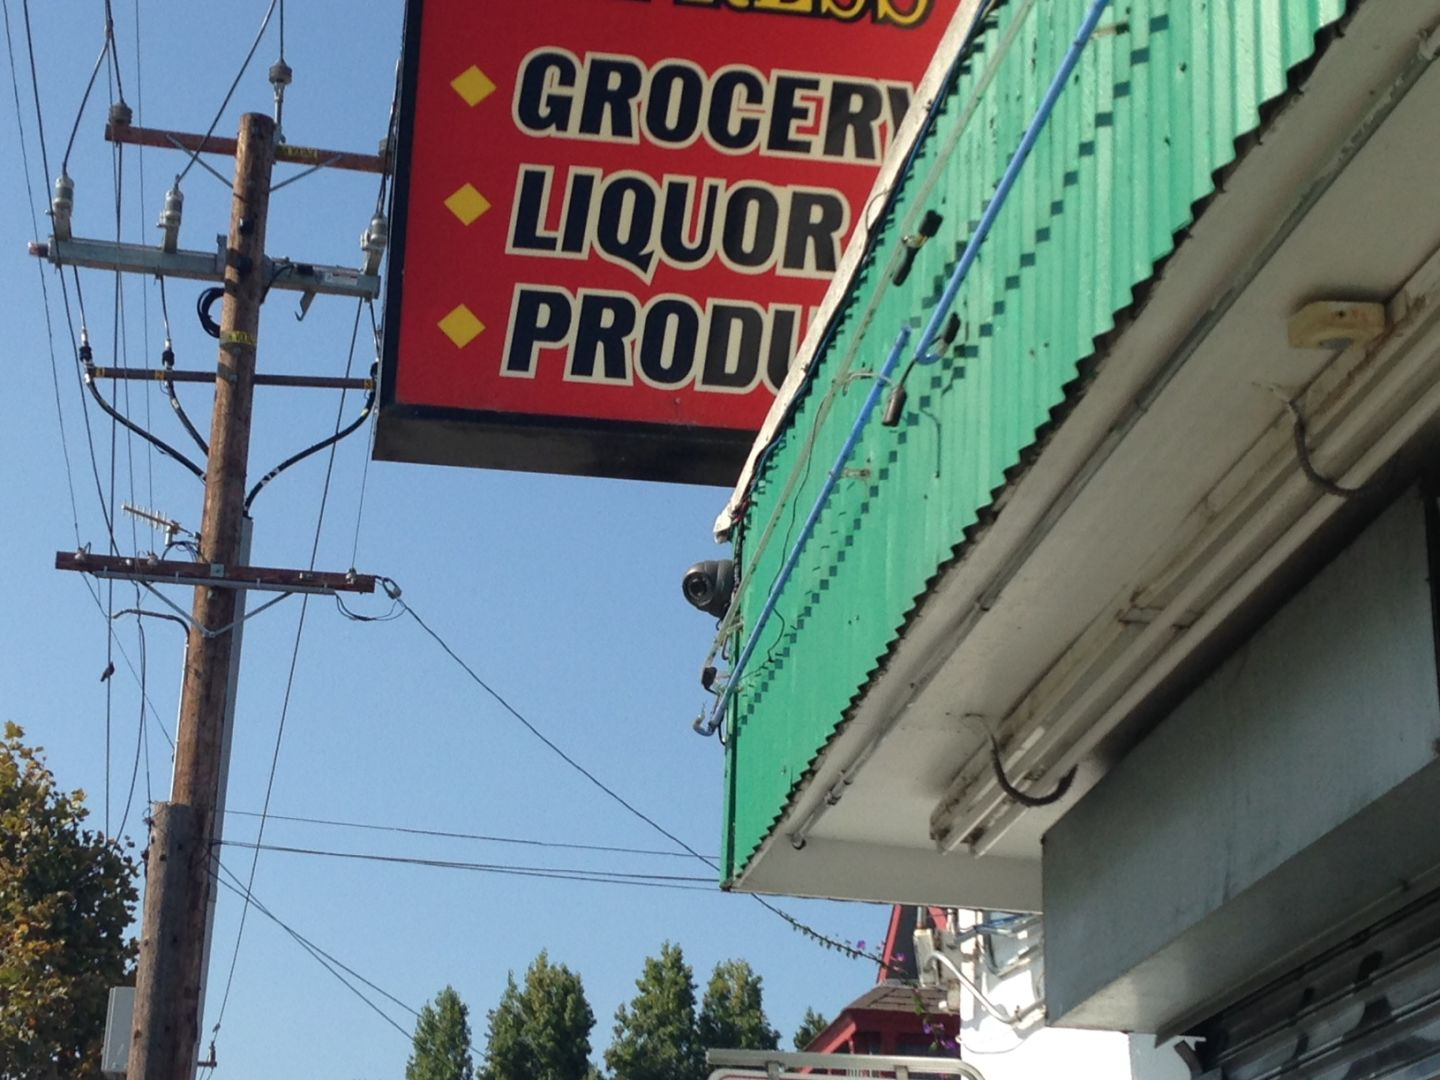 For decades, West Oakland residents have made do without a major chain grocery. Corner markets and liquor stores are the main local source for groceries.